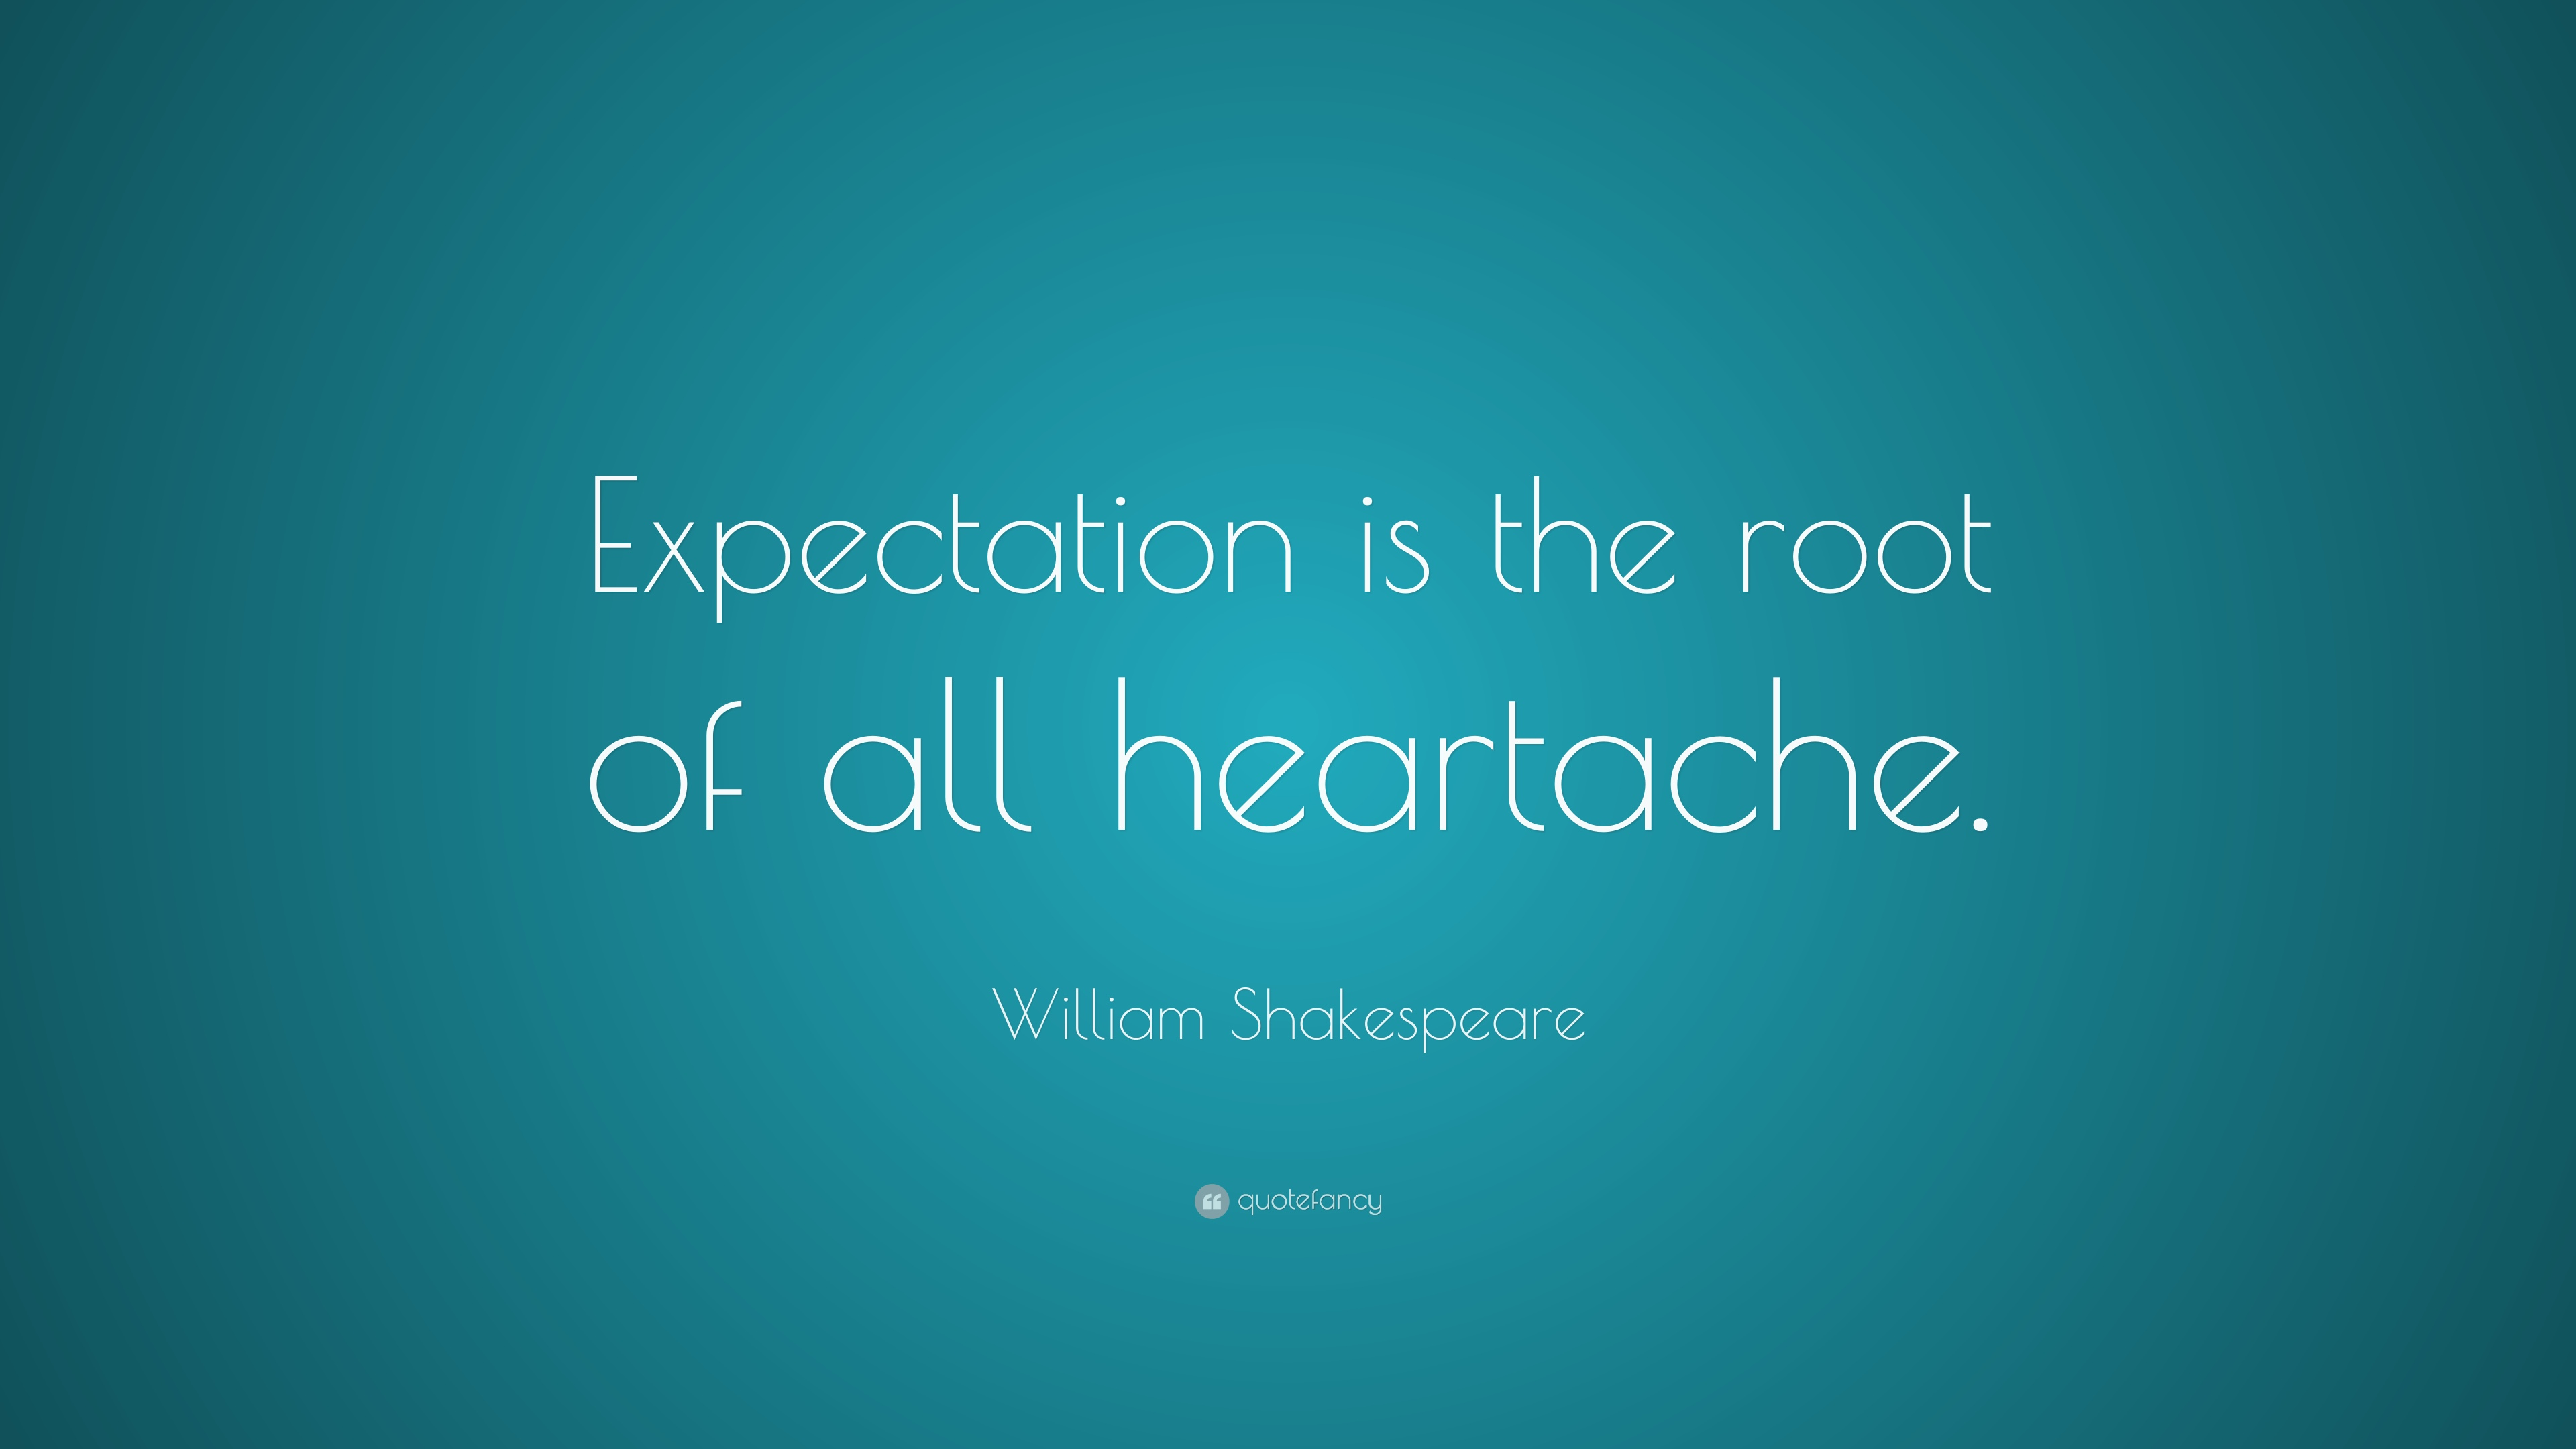 William Shakespeare Quote: ?Expectation is the root of all heartache.? (21 wallpapers) - Quotefancy